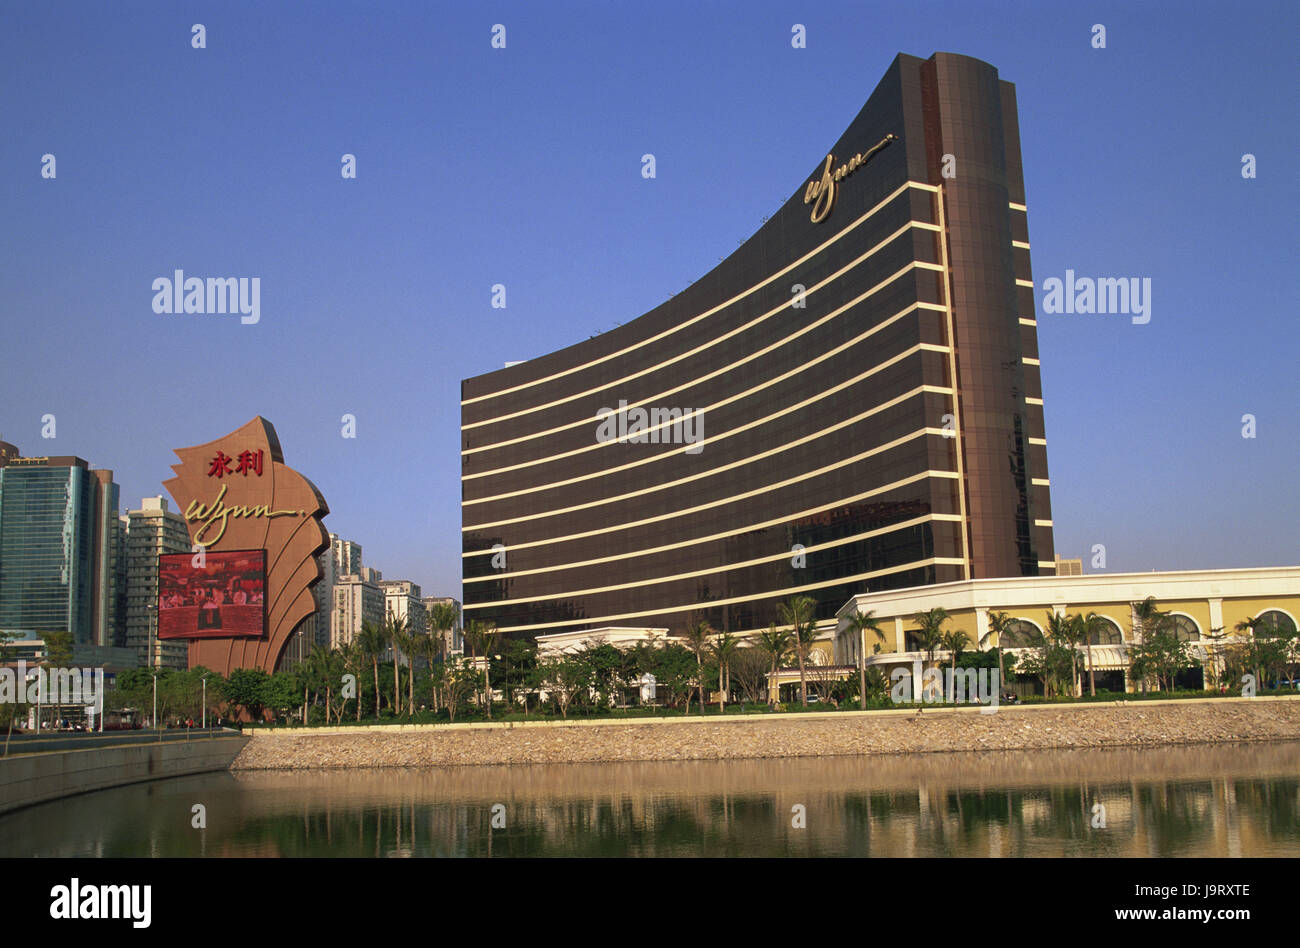 China,Macau,Wynn hotel and casino,Asia,Eastern Asia,peninsula,town,building,architecture,hotel building,modern,tourism,palms,water,water - Stock Image